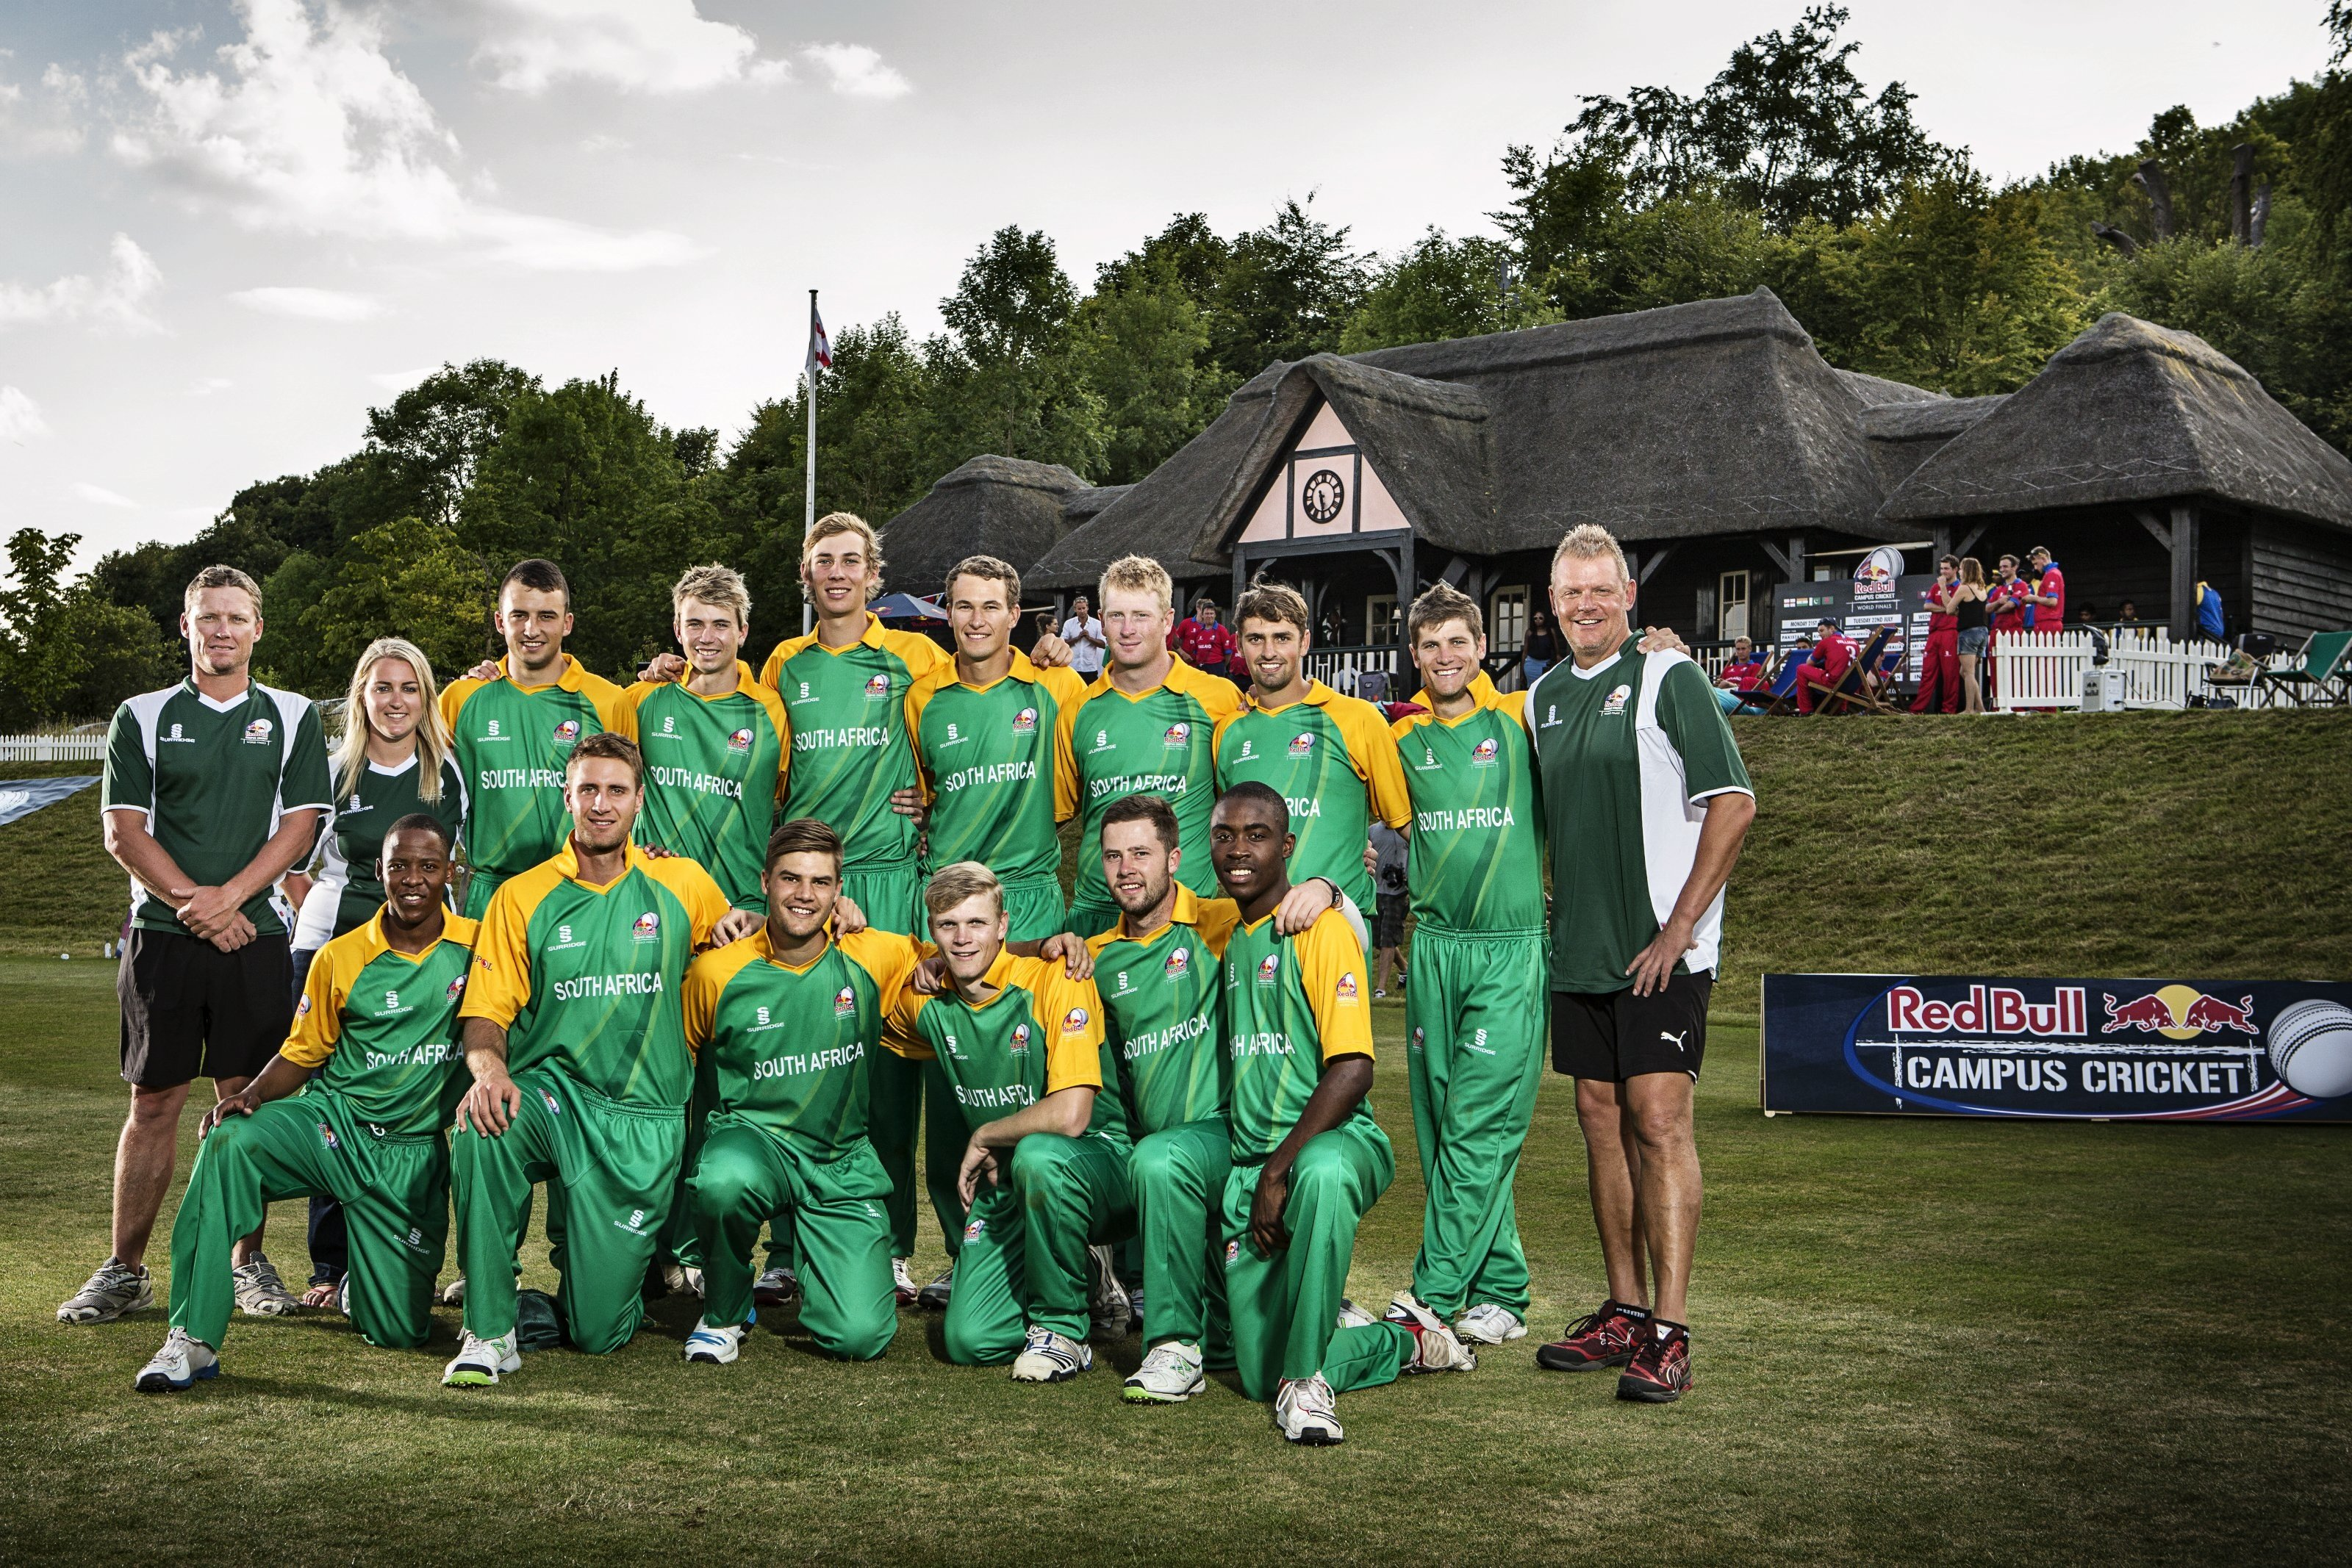 Red Bull Campus Cricket World Final Winners